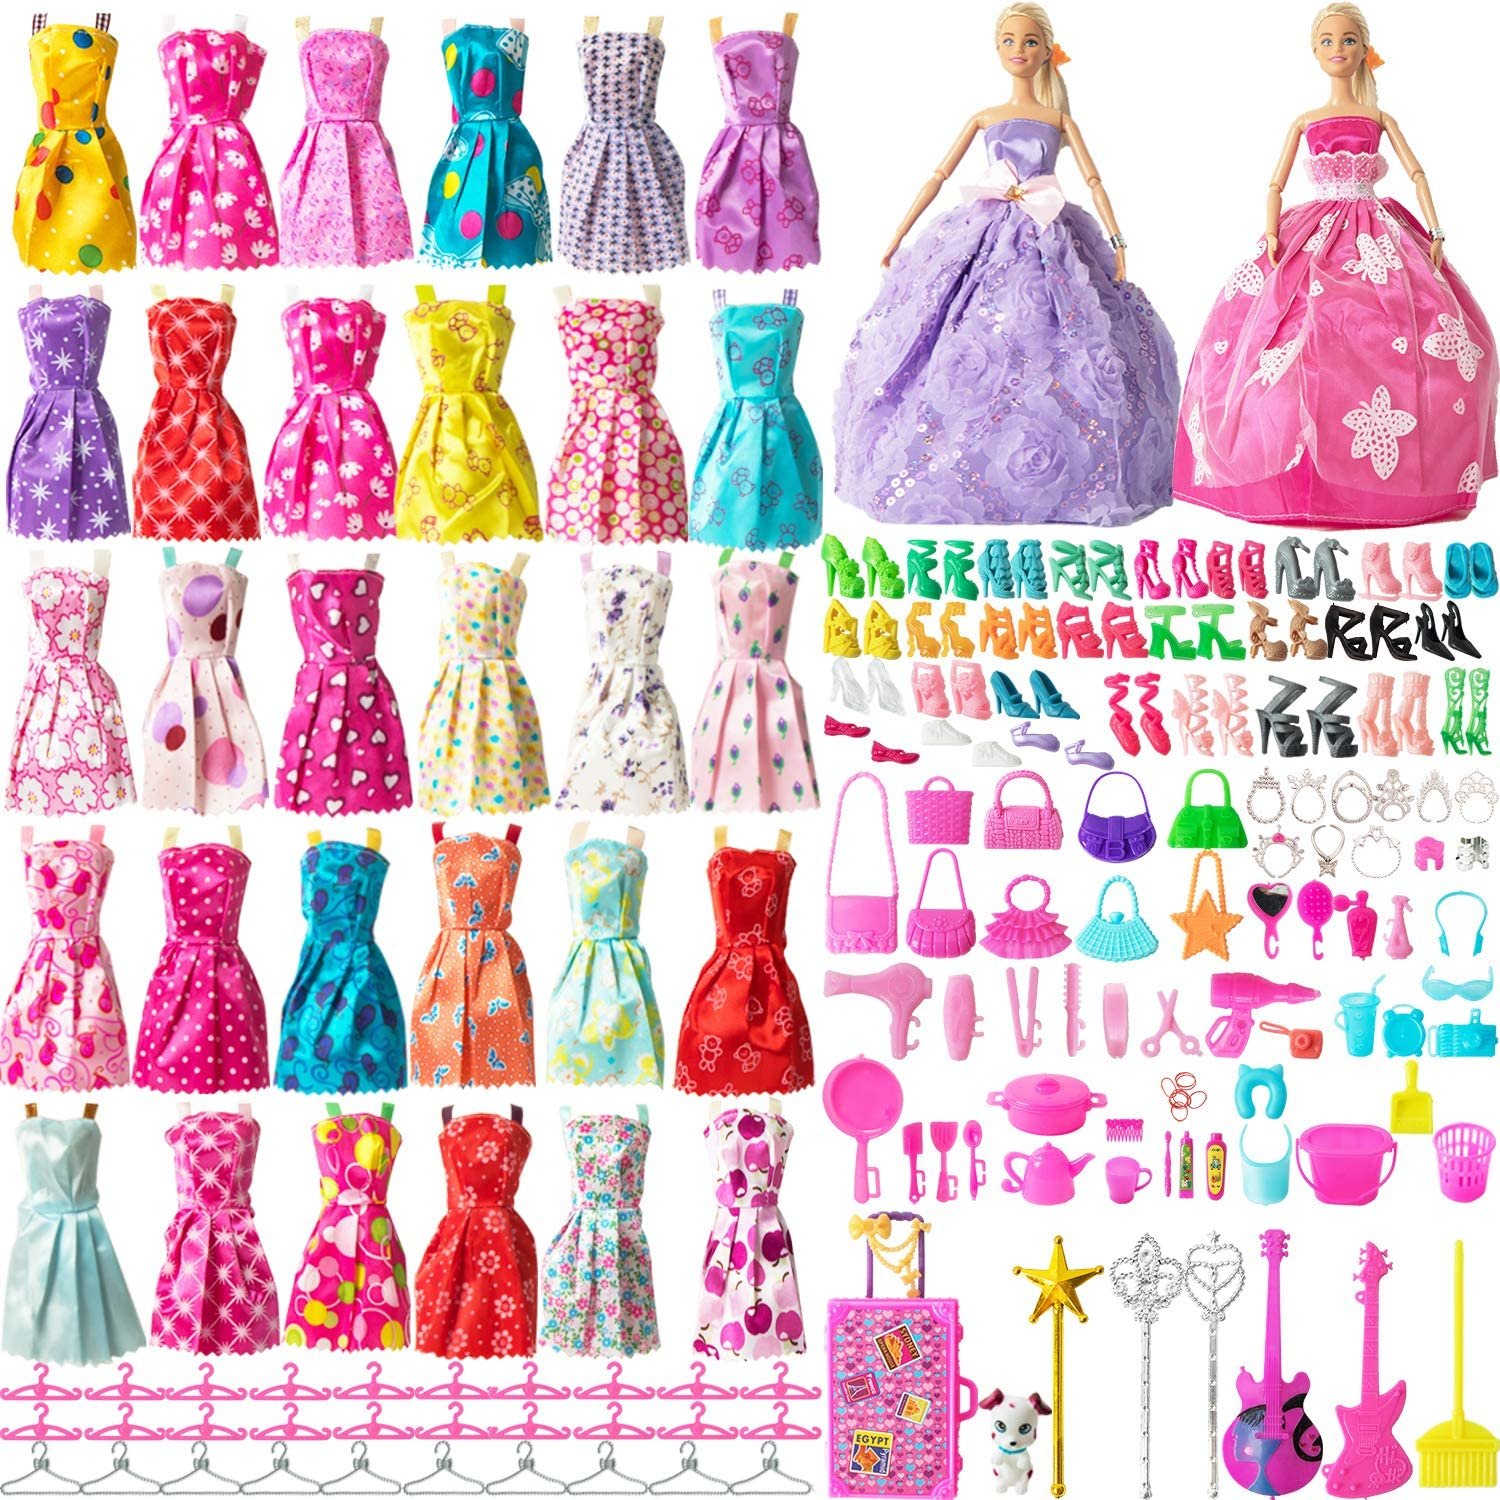 SOTOGO 200 Pieces Doll Clothes and Accessories for 11.5 Inch Girl Doll Different Occasions Include 32 Pieces Handmade Doll Grown Outfits Fashion Party Dresses and 168 Pieces Different Doll Accessories